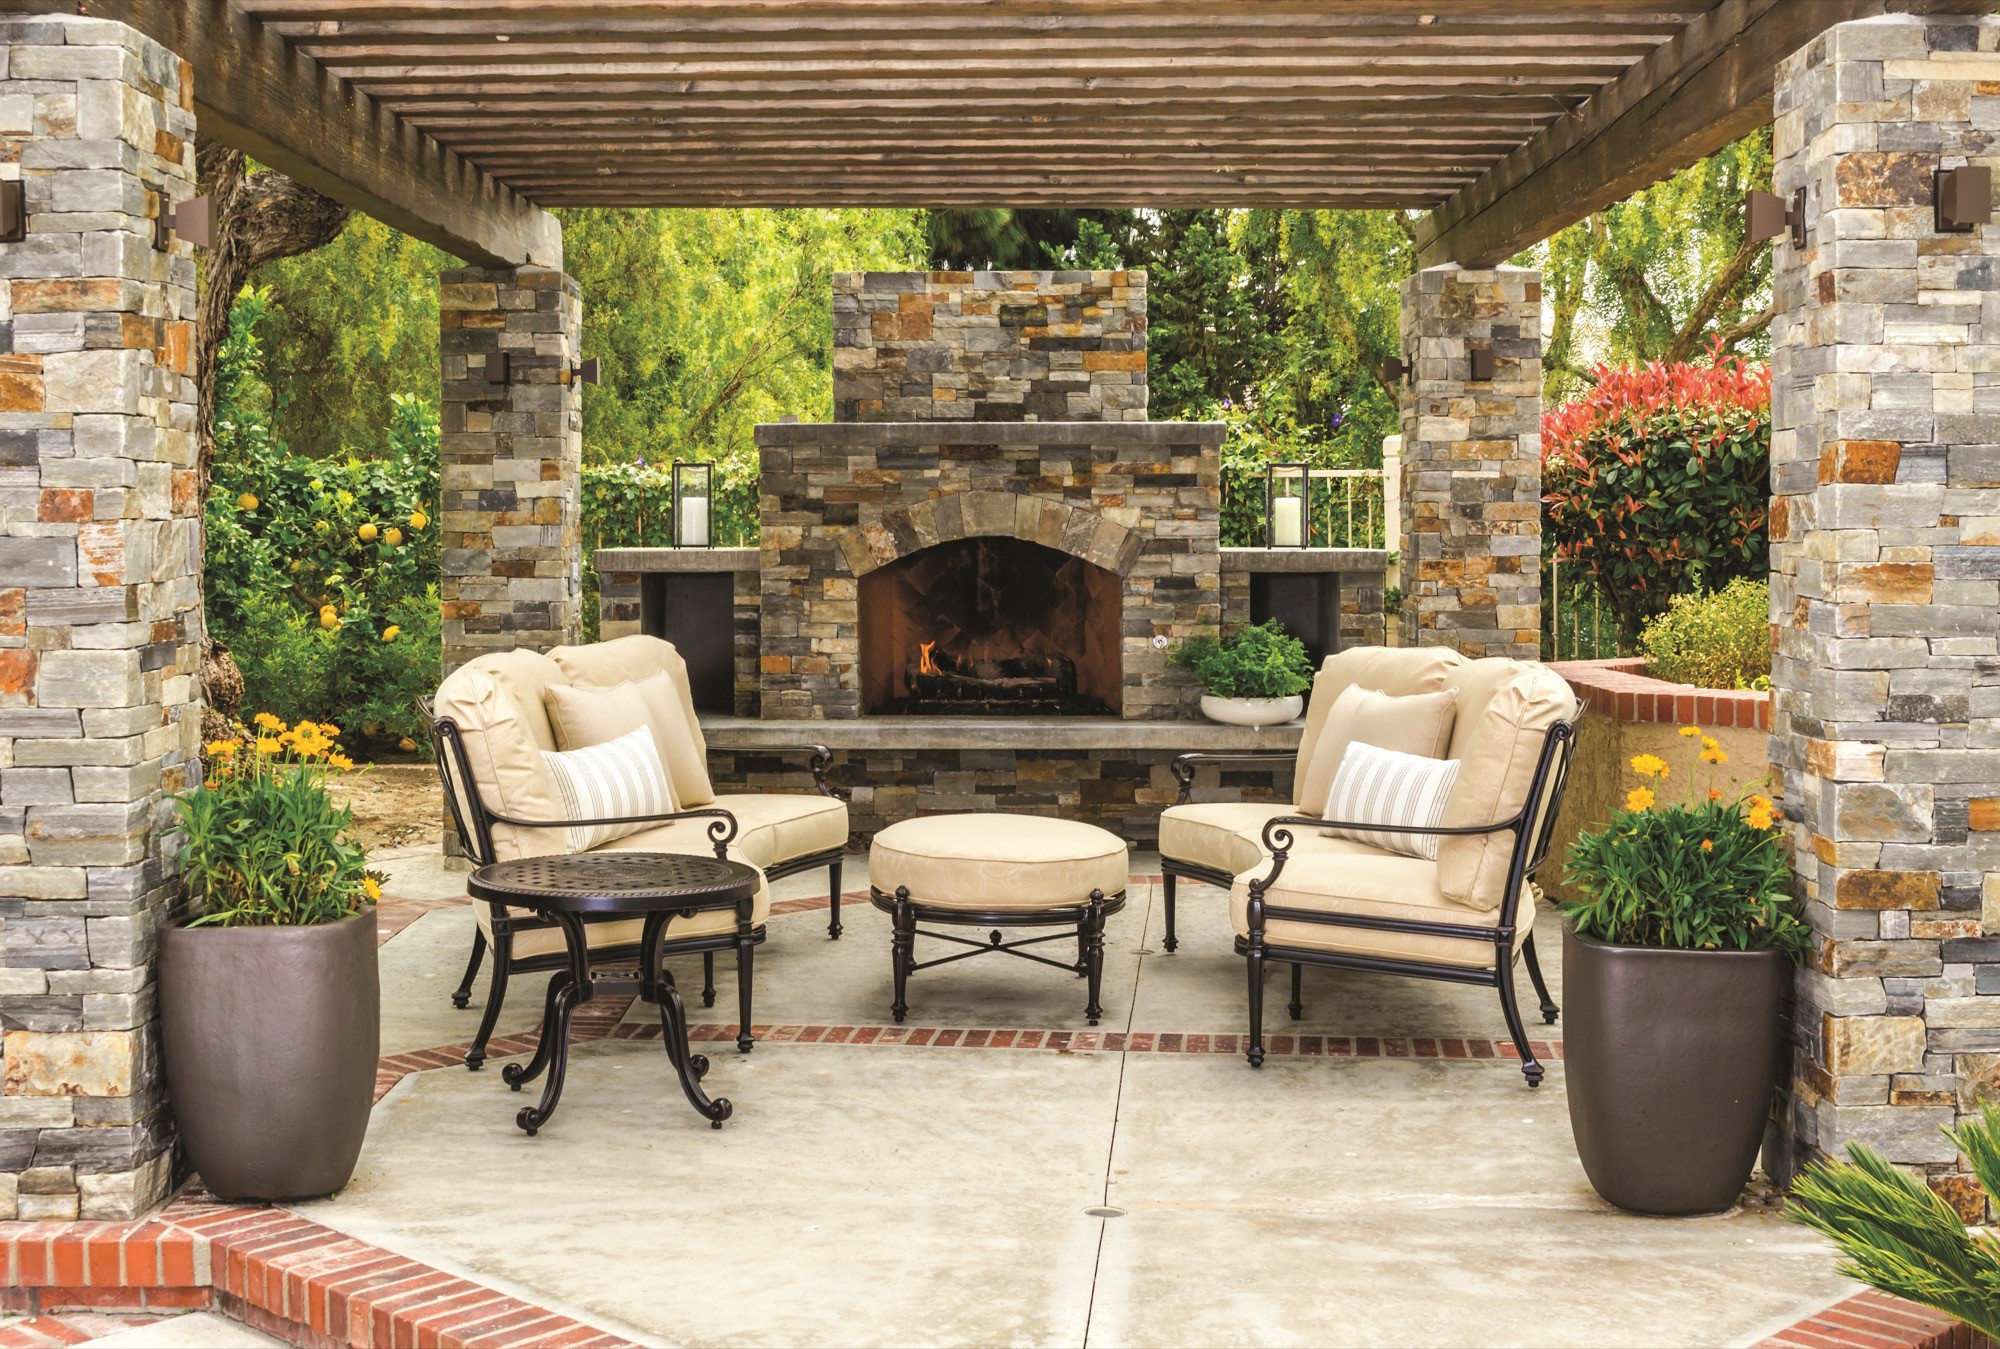 Grand Terrace Deep Seating Curved Sofas Location_resized